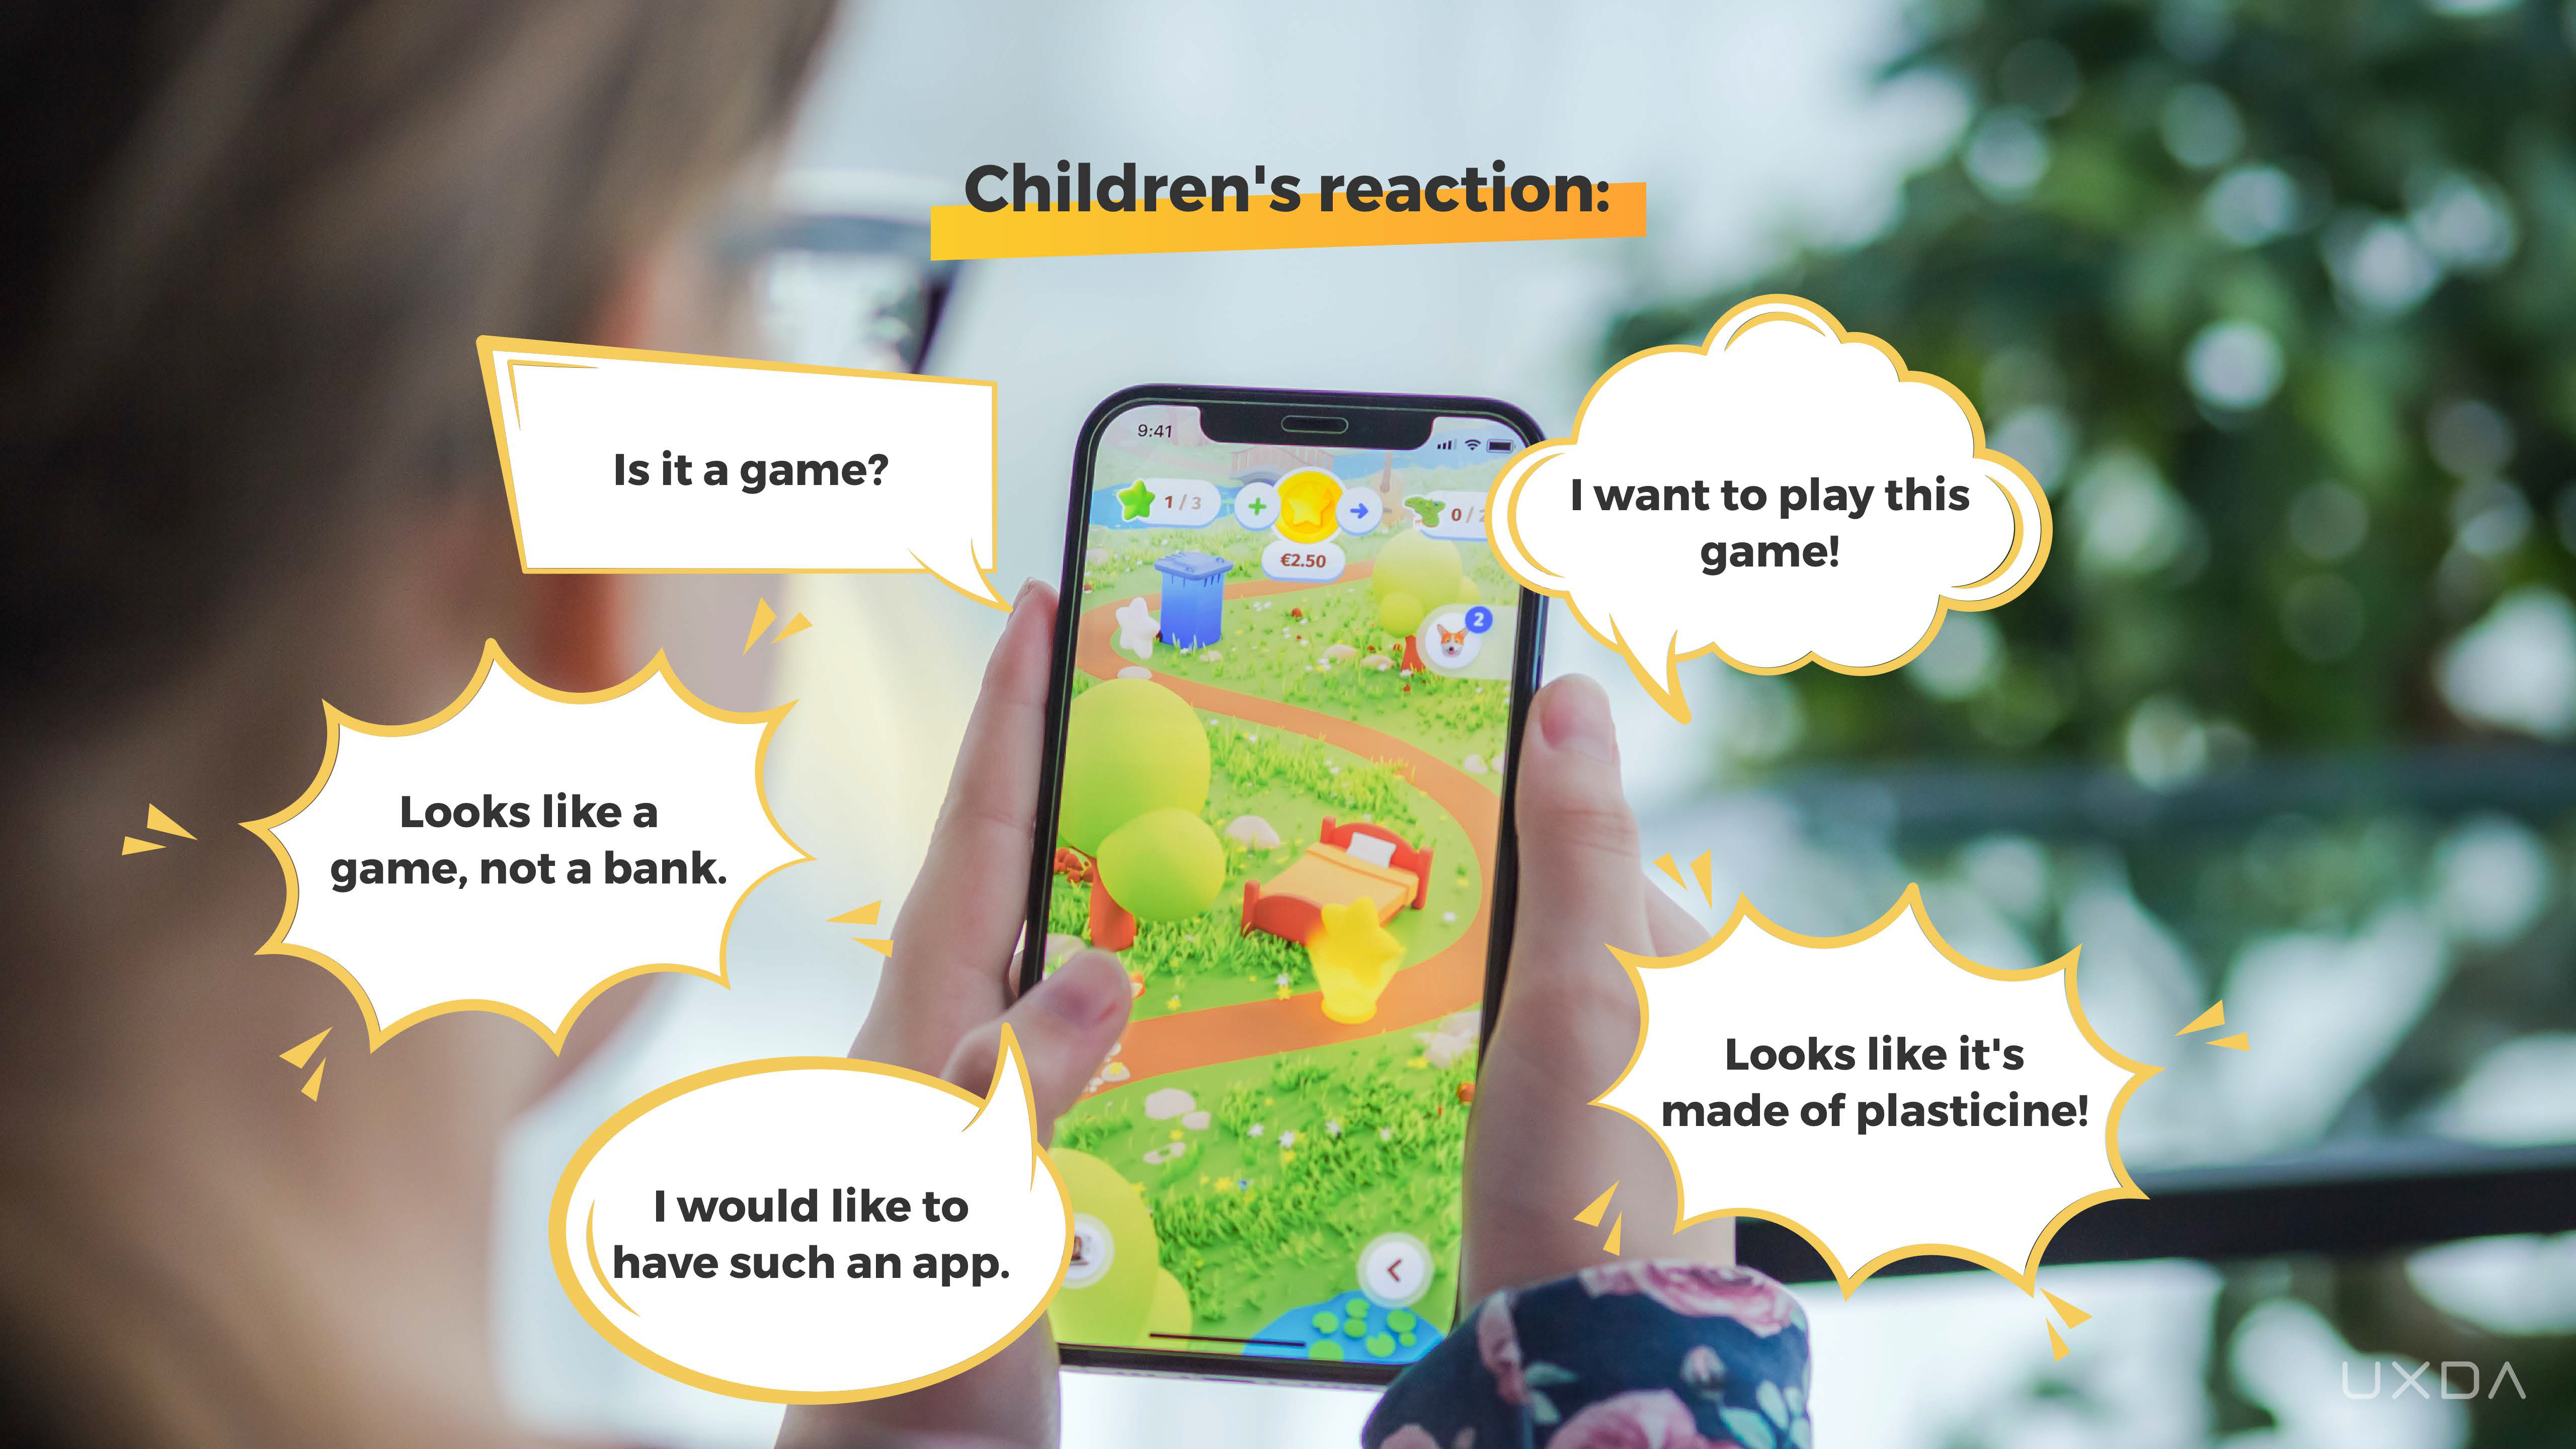 kids-banking-app-UX-design-concept-by-UXDA-6-1632140949.png